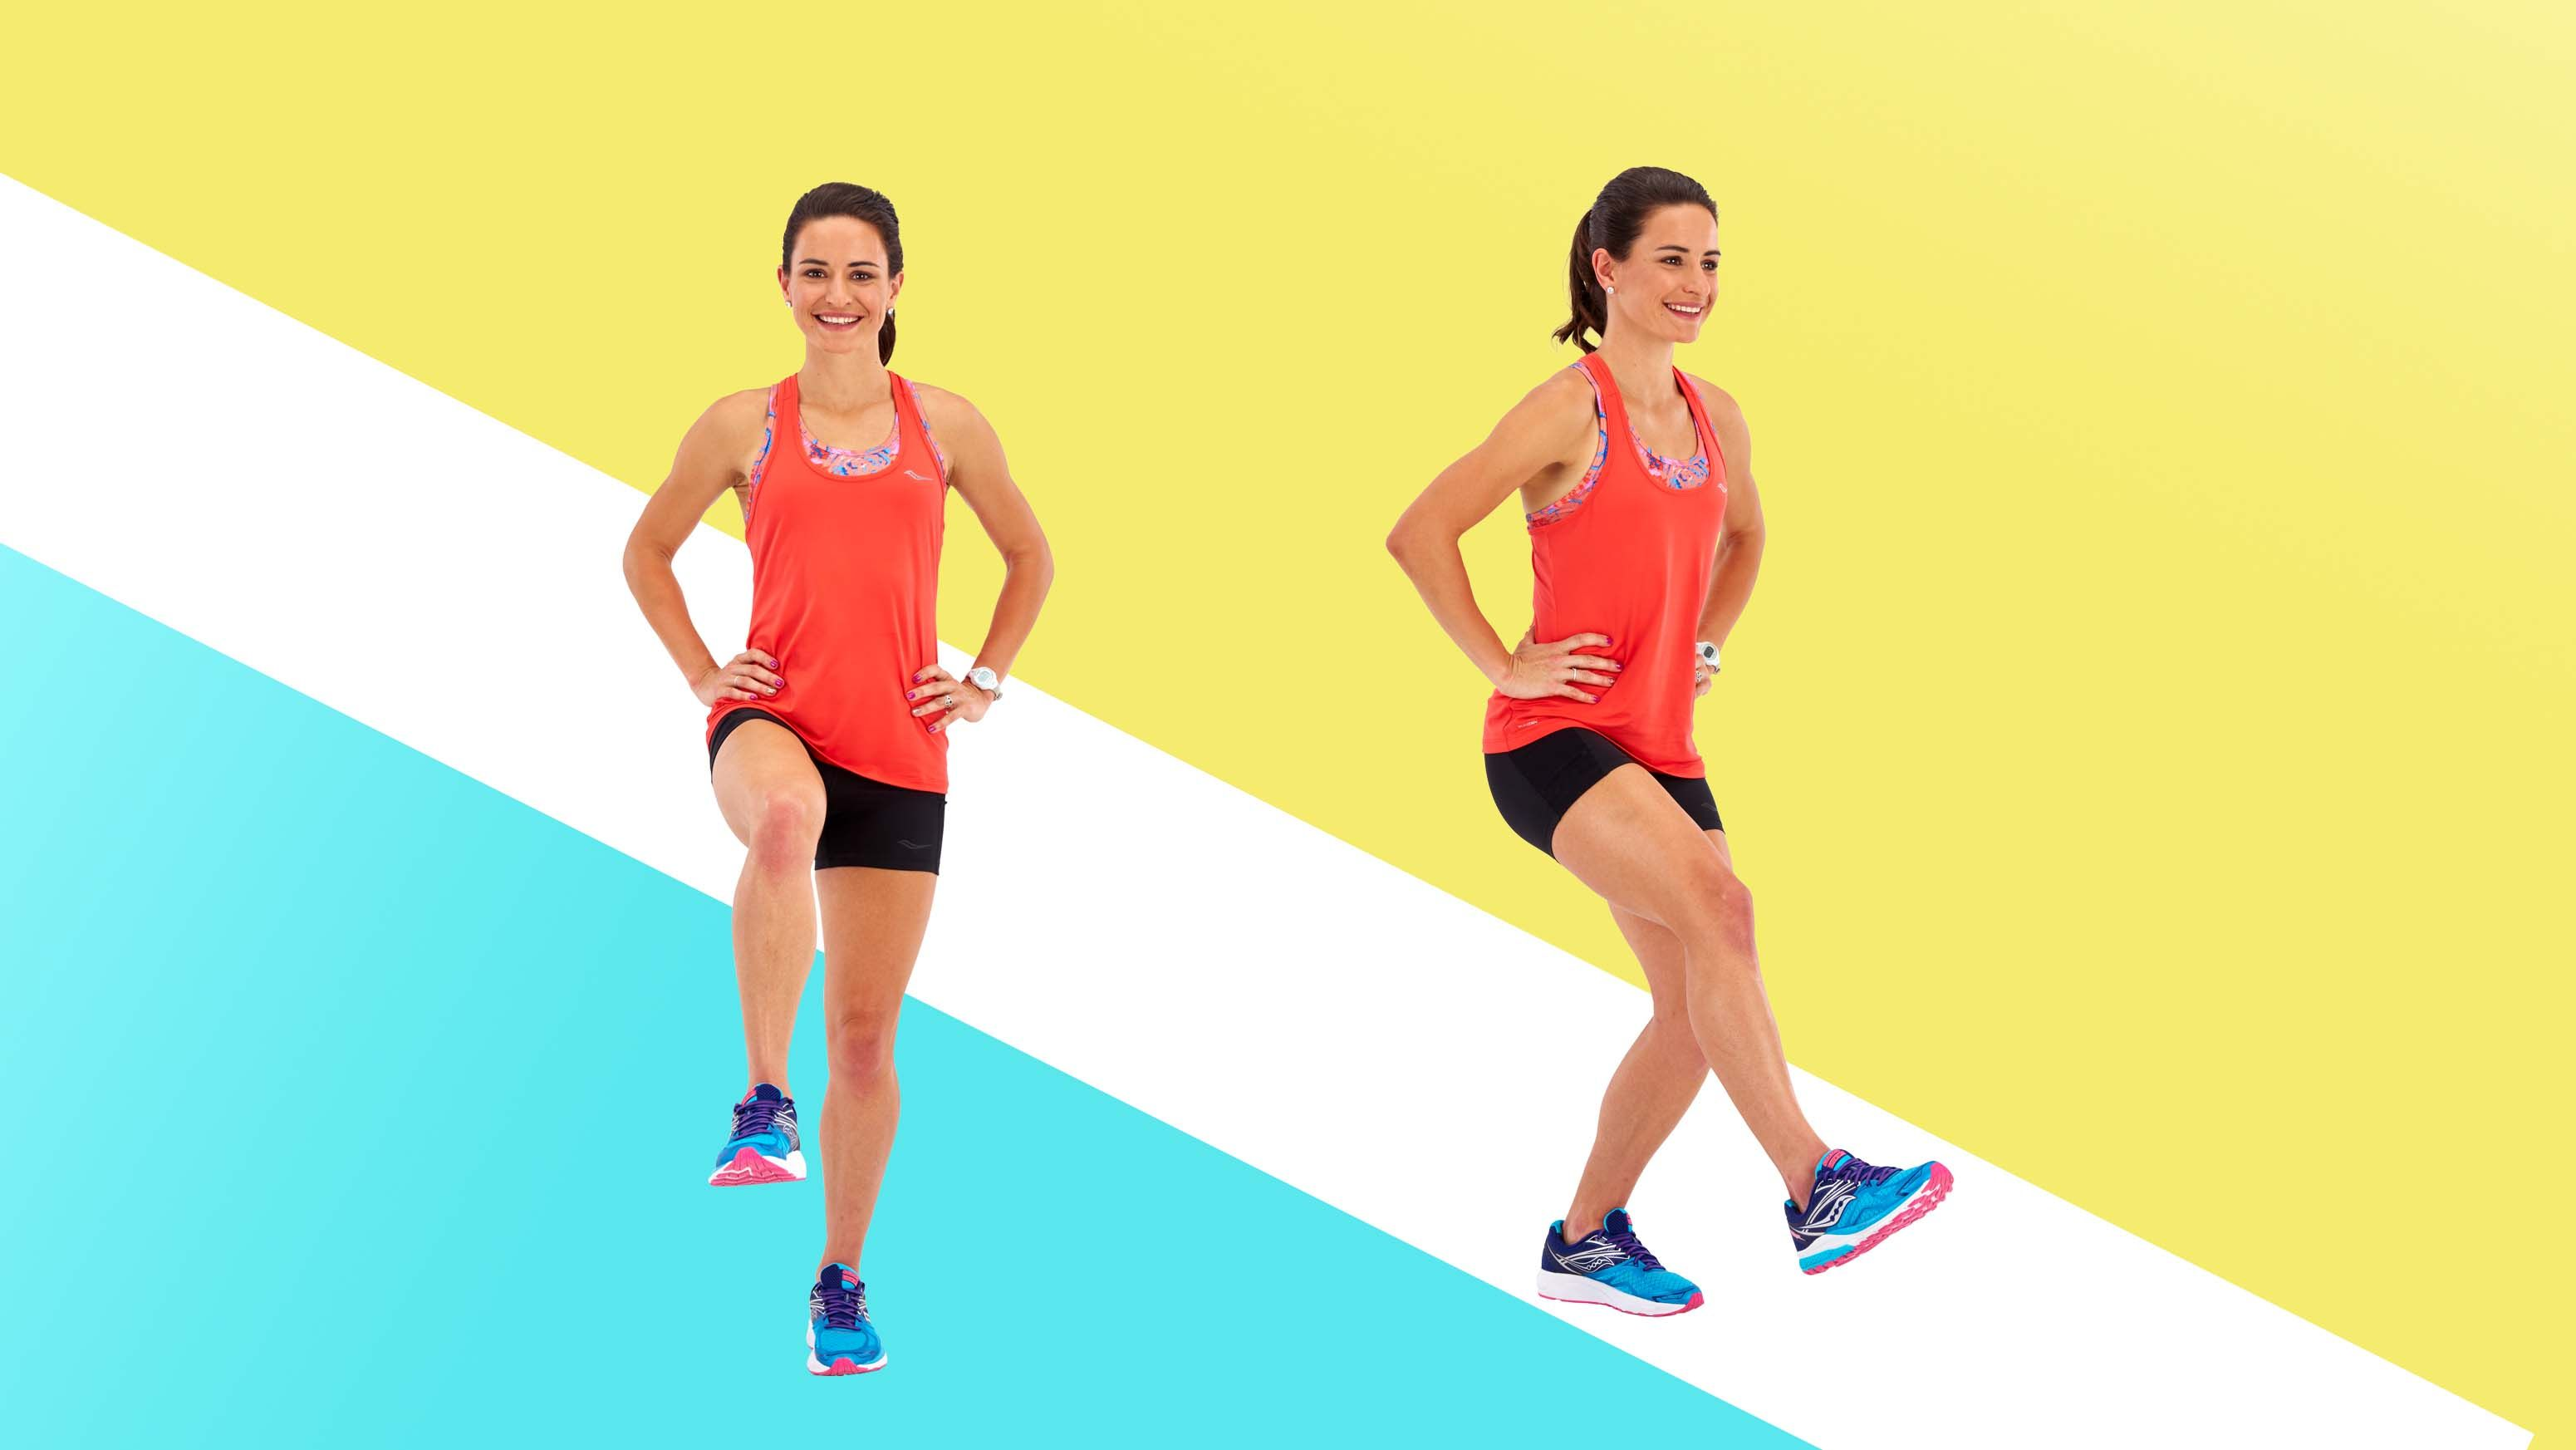 Get stronger and avoid injury with this postrun stability workout